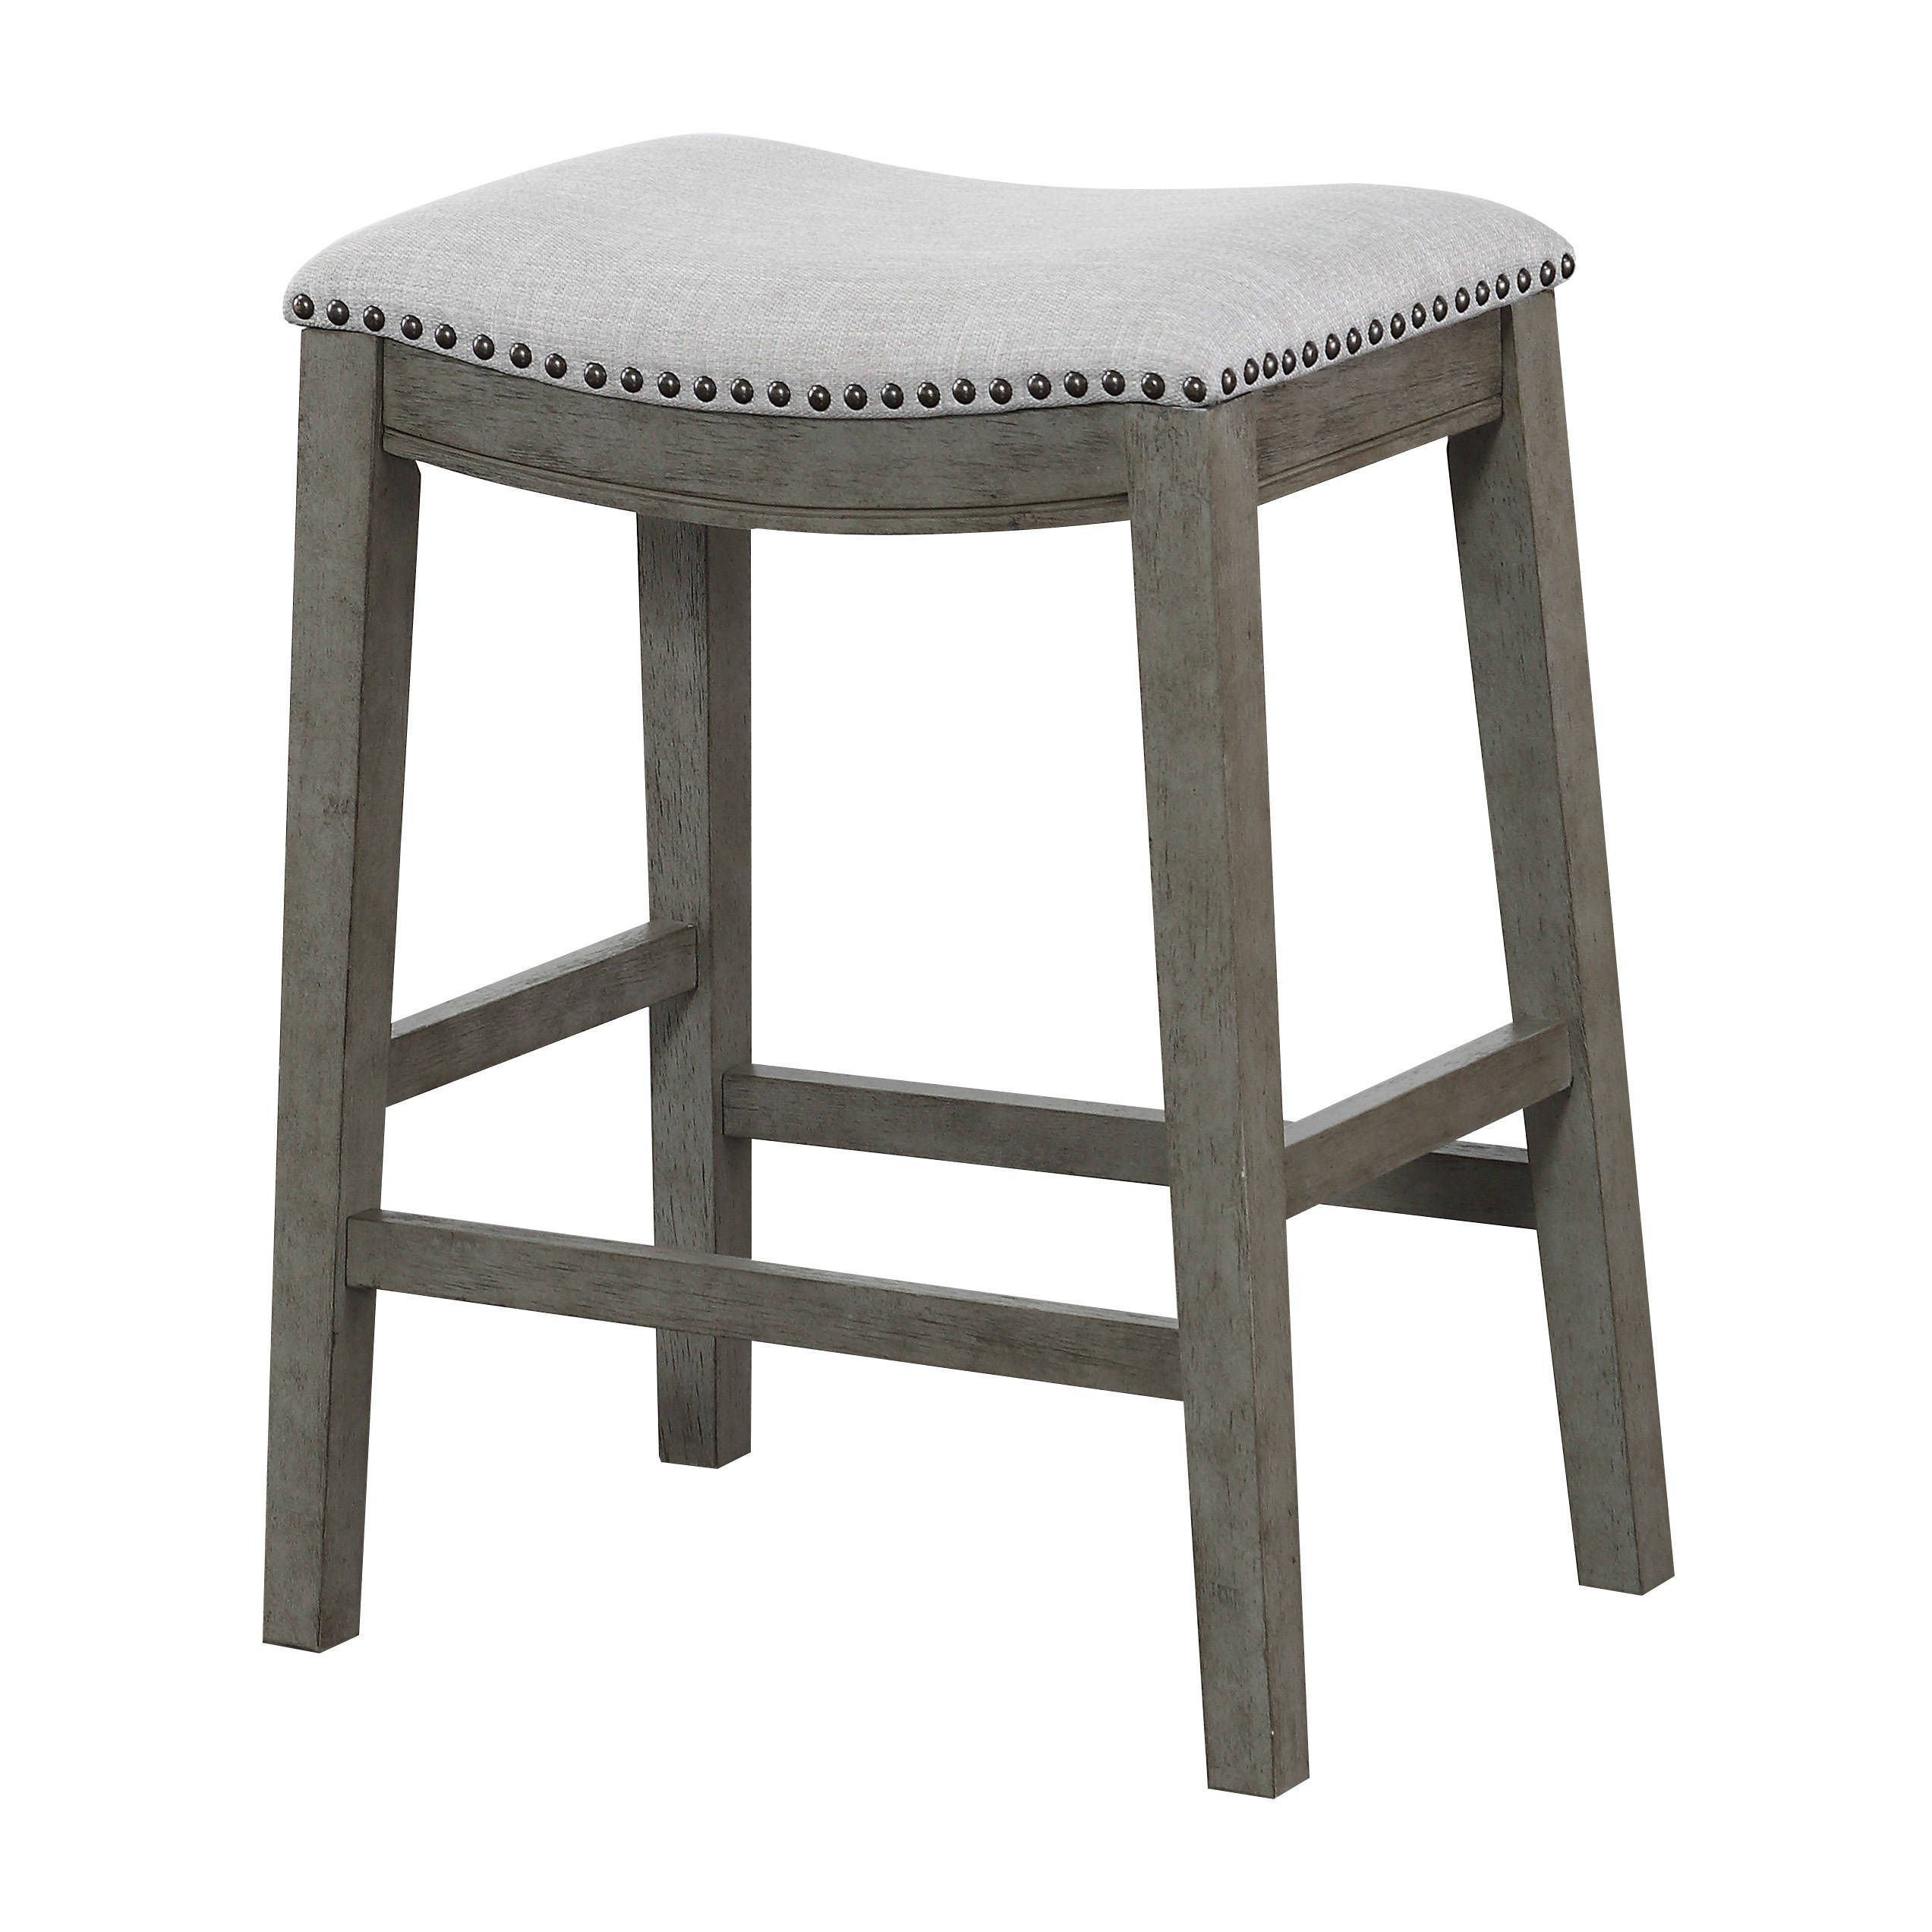 The Gray Barn Arbakka Grey 24 Inch Saddle Bar Stools Set